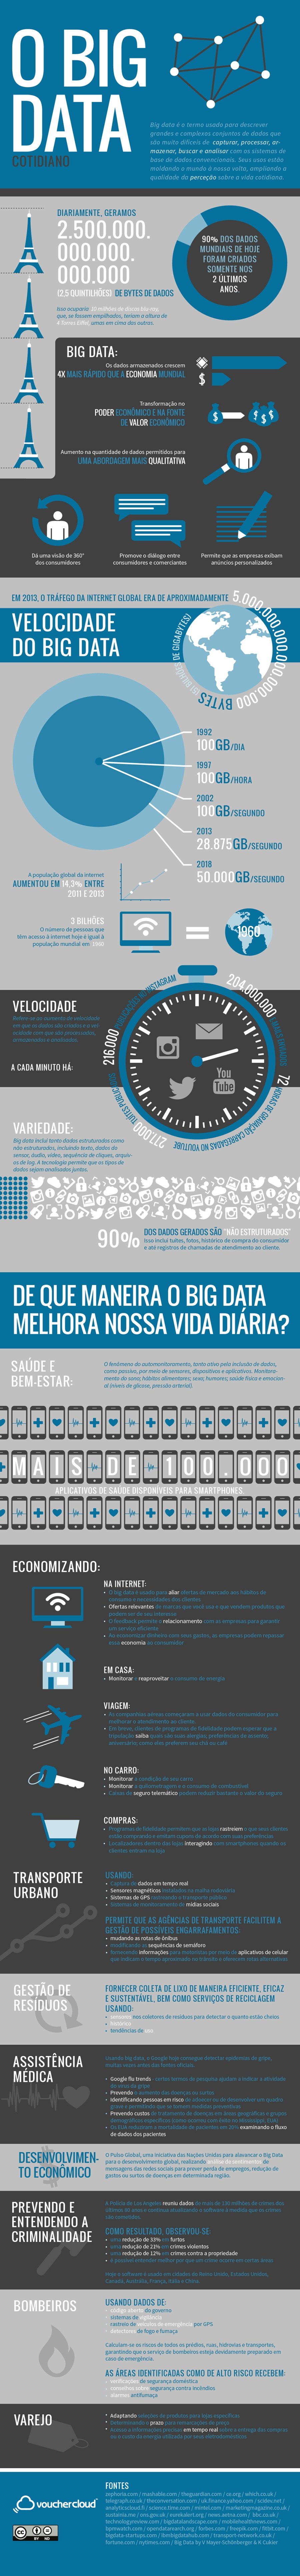 O Big Data Cotidiano - Infográfico